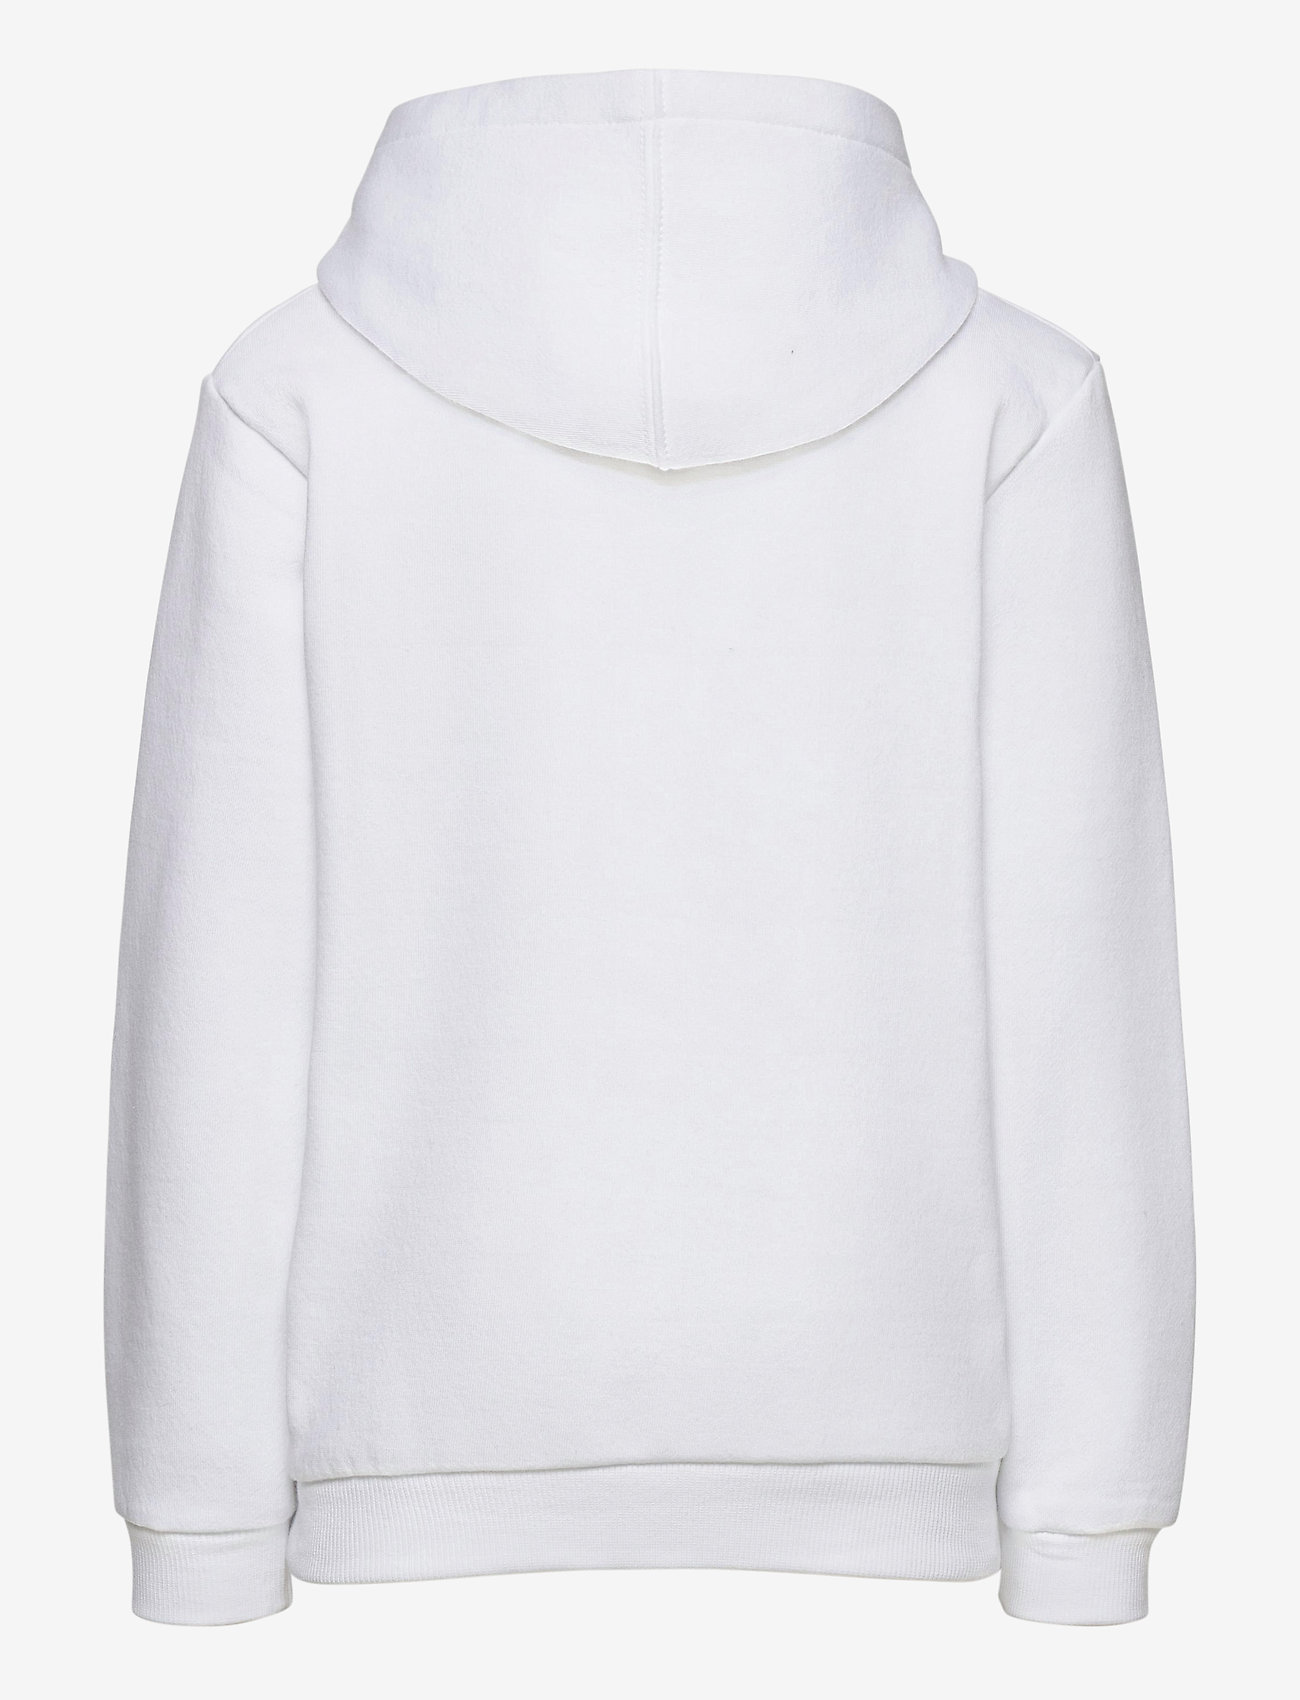 Levi's - SWEAT SHIRT - kapuzenpullover - white - 1